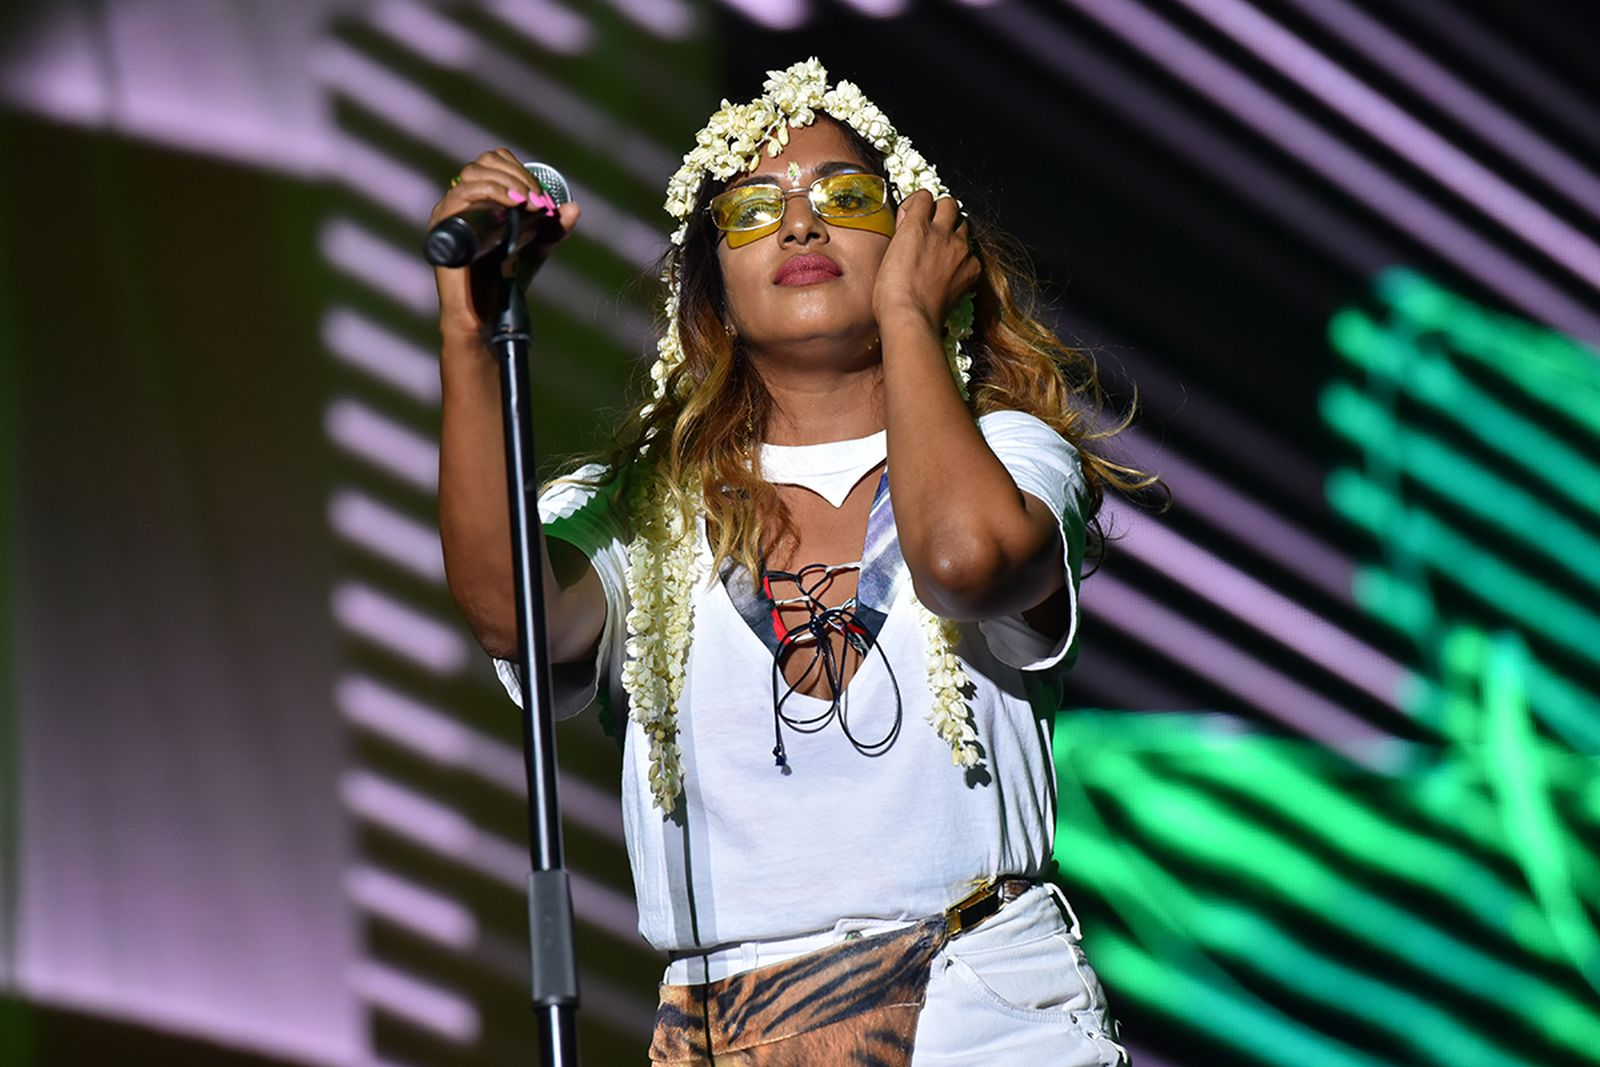 M.I.A. performing